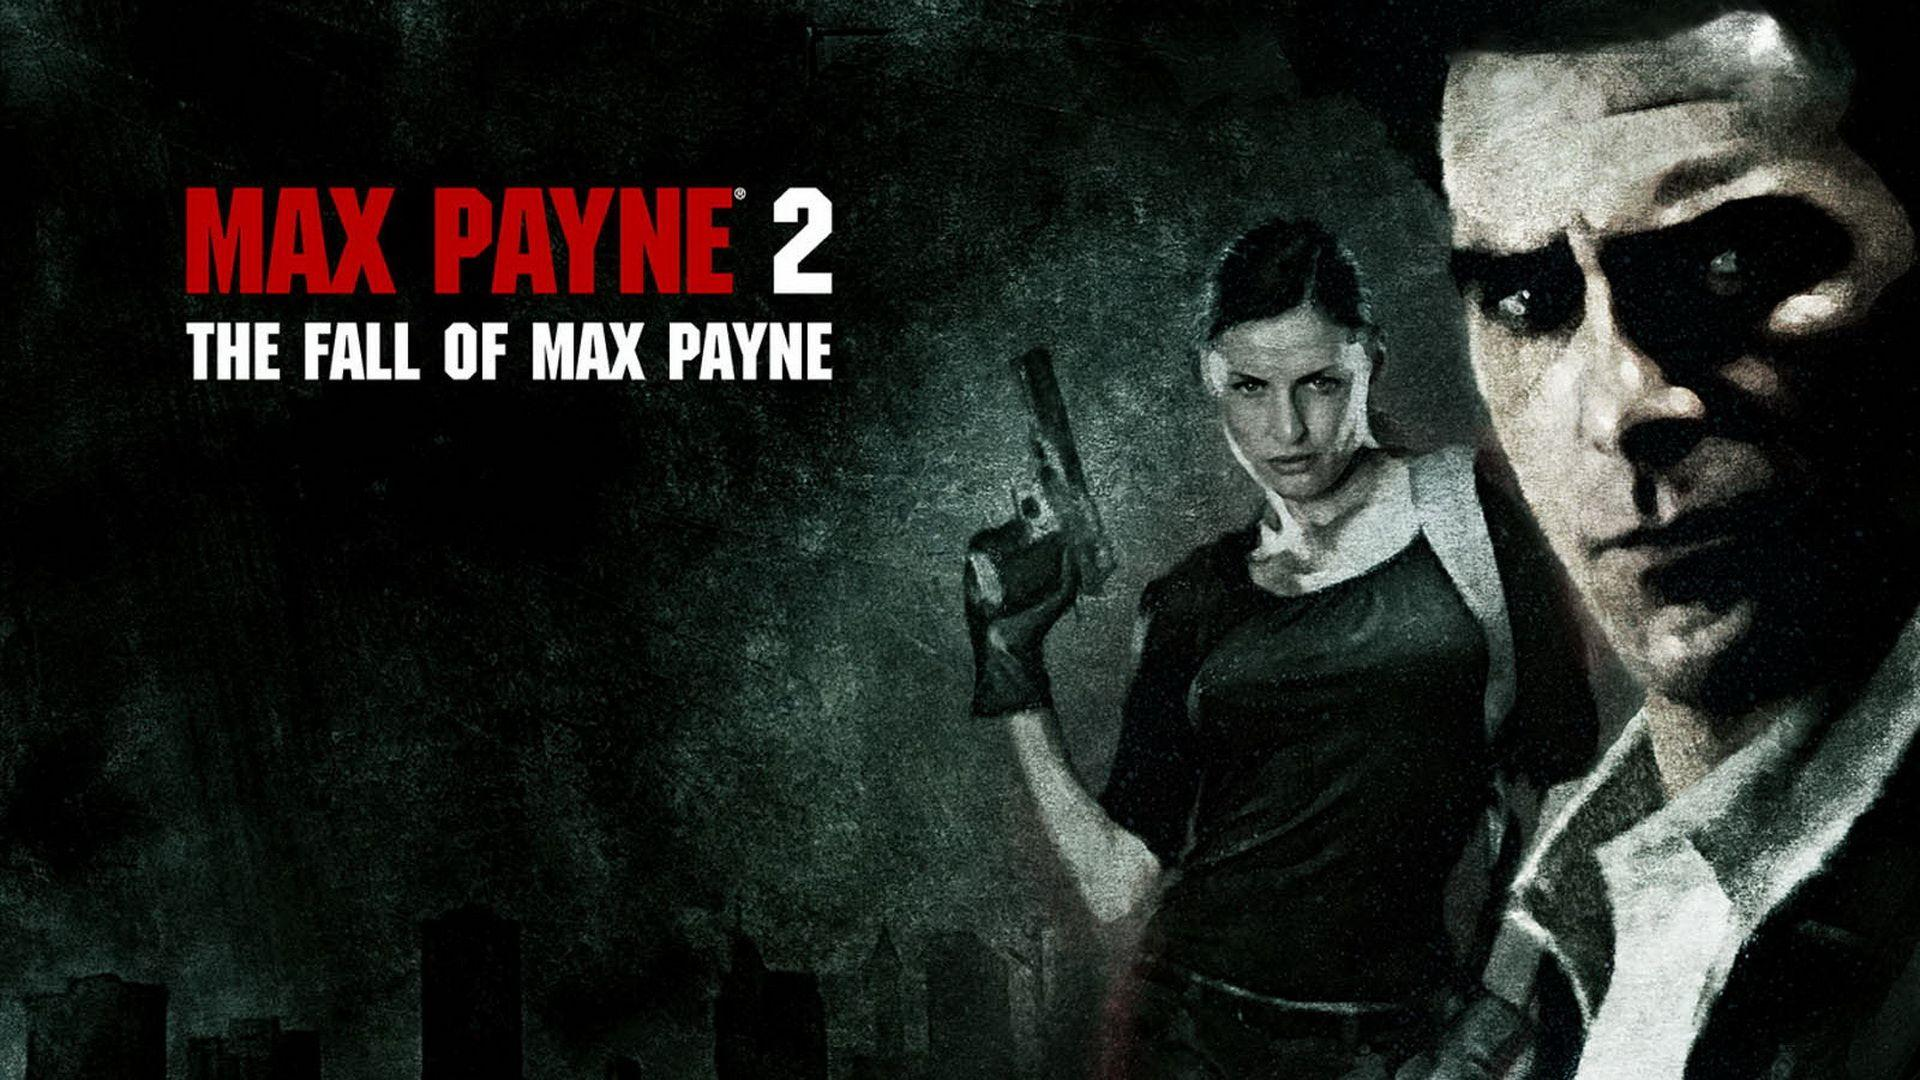 Max Payne 2 Wallpapers Wallpaper Cave